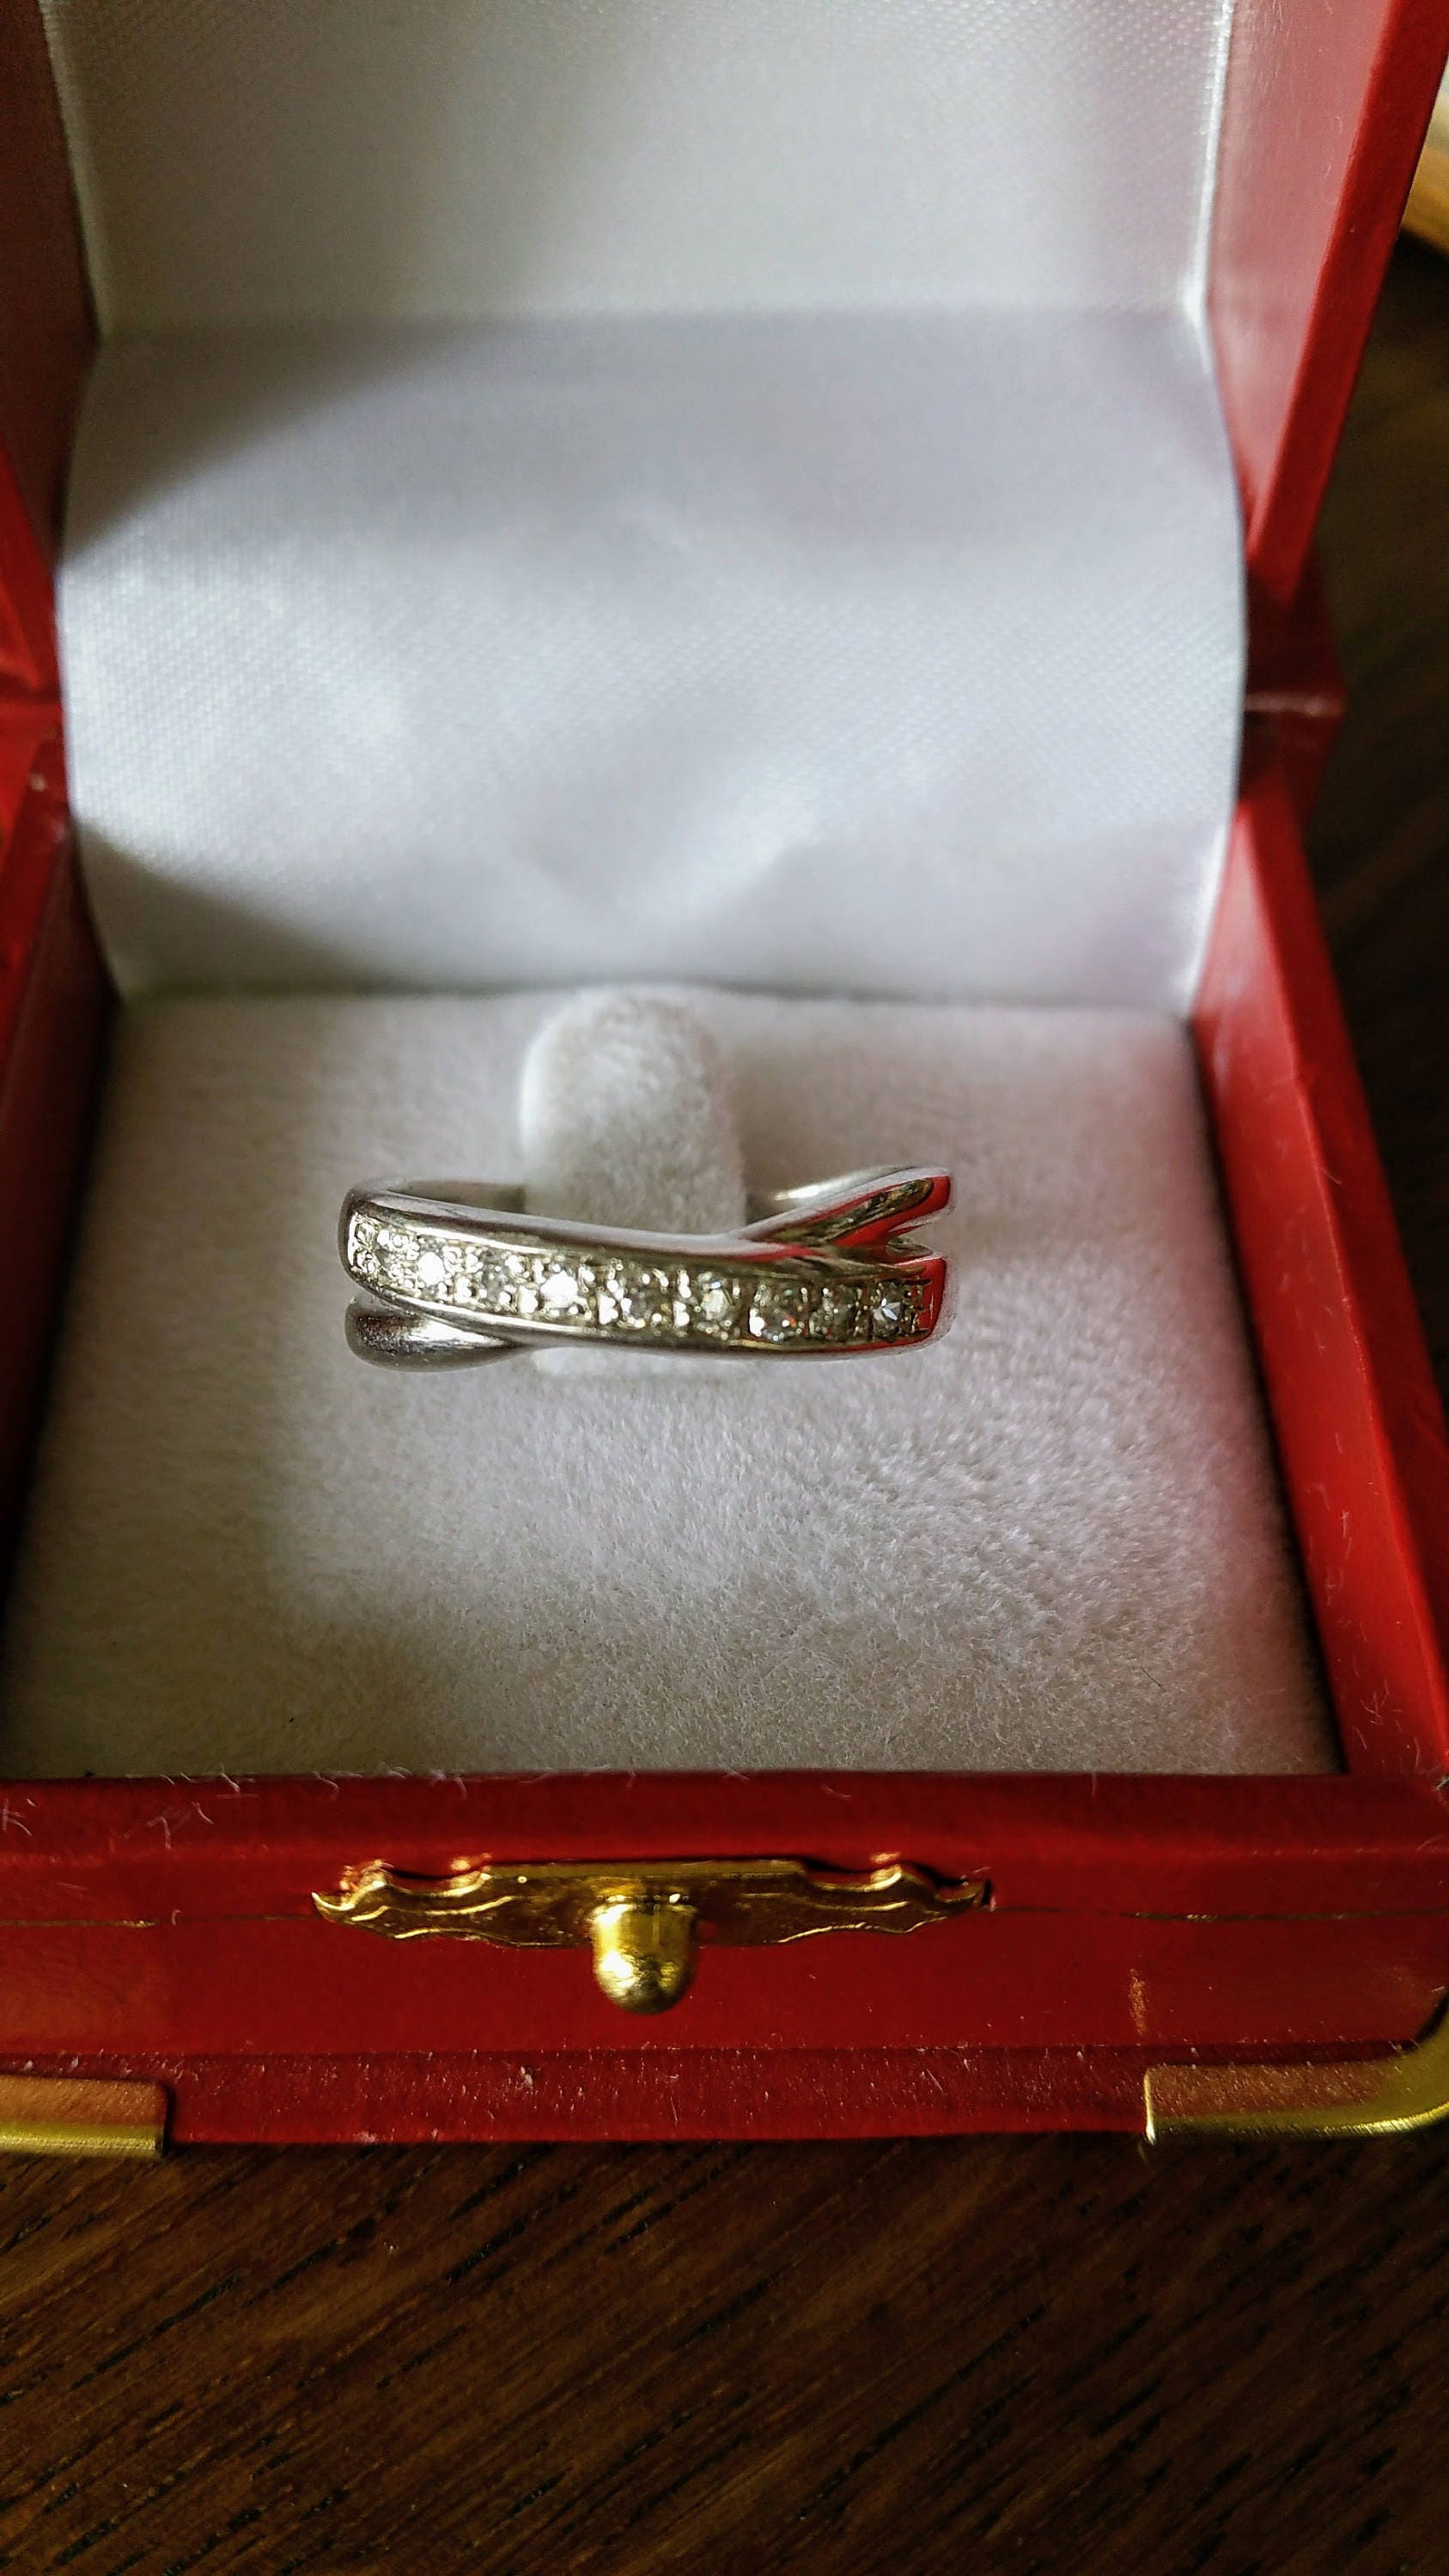 Vintage eternity ring sterling silver cubic zirconia cross over ring size R 925 silver US ring size 8 34 anniversary birthday gifts